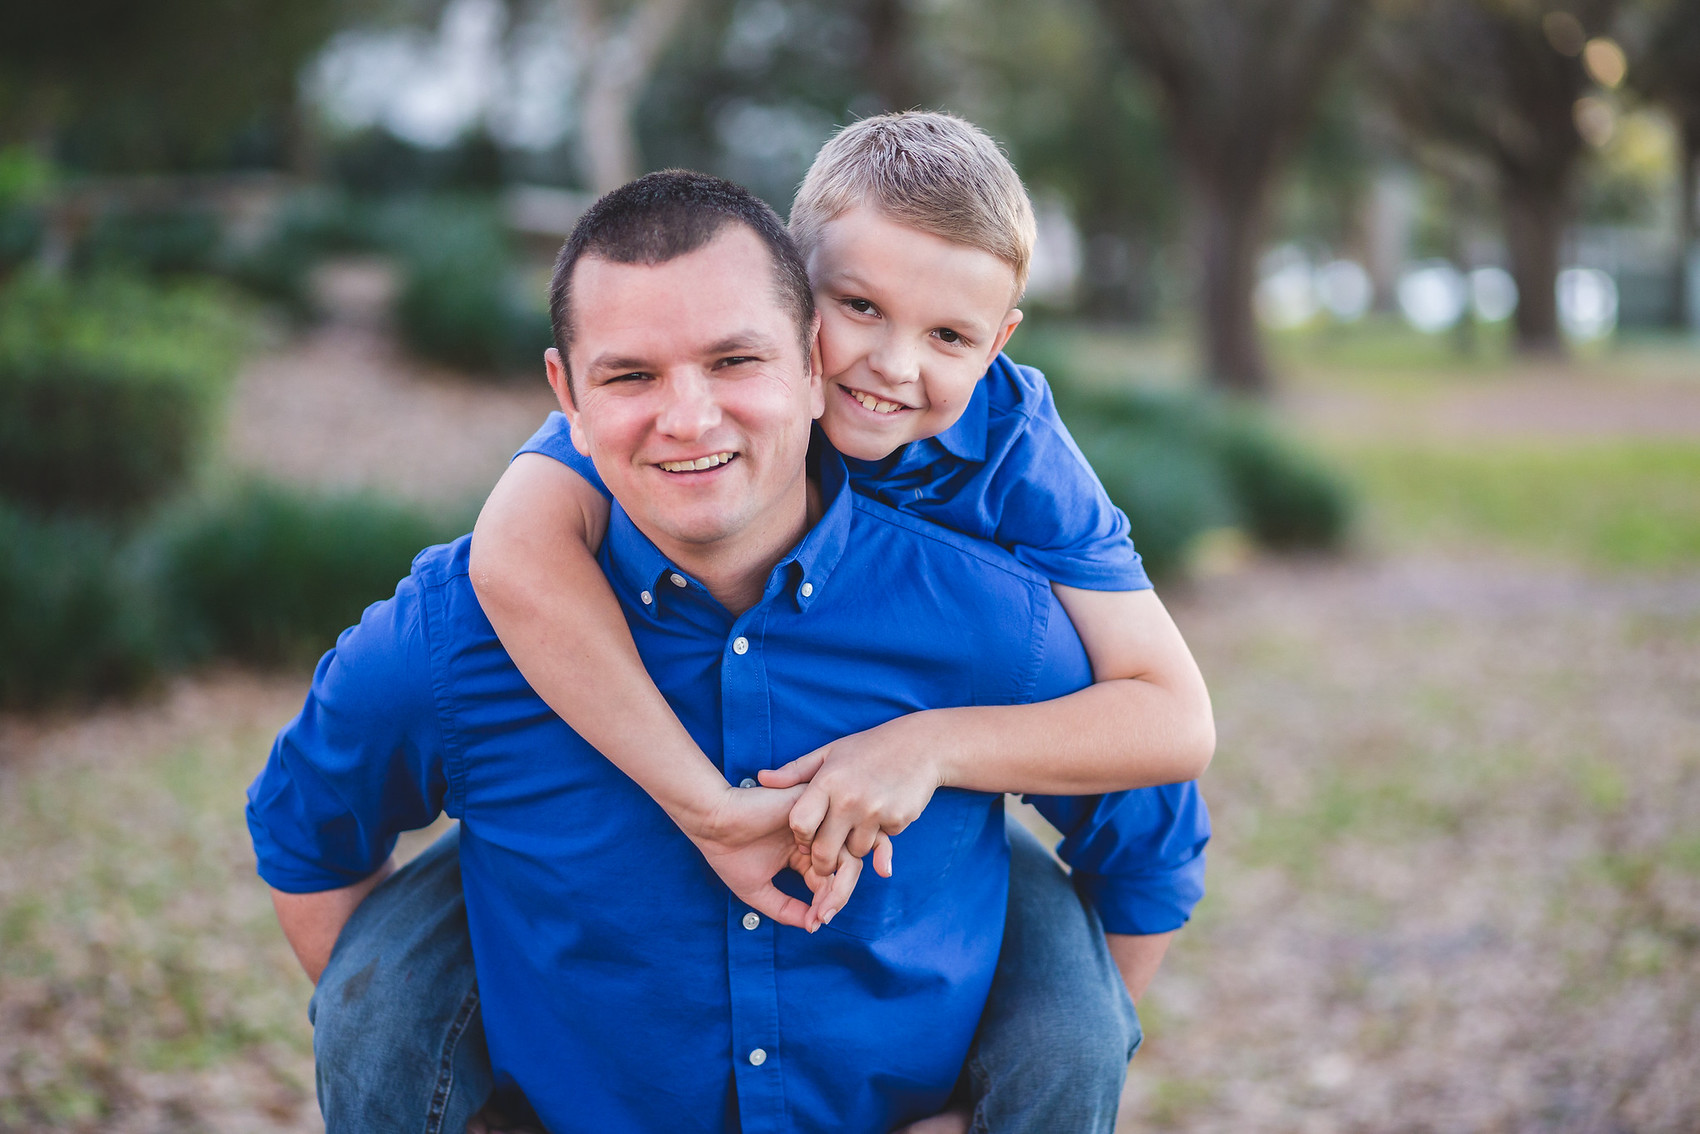 adam-szarmack-treaty-oak-park-jacksonville-family-photographer-22.jpg